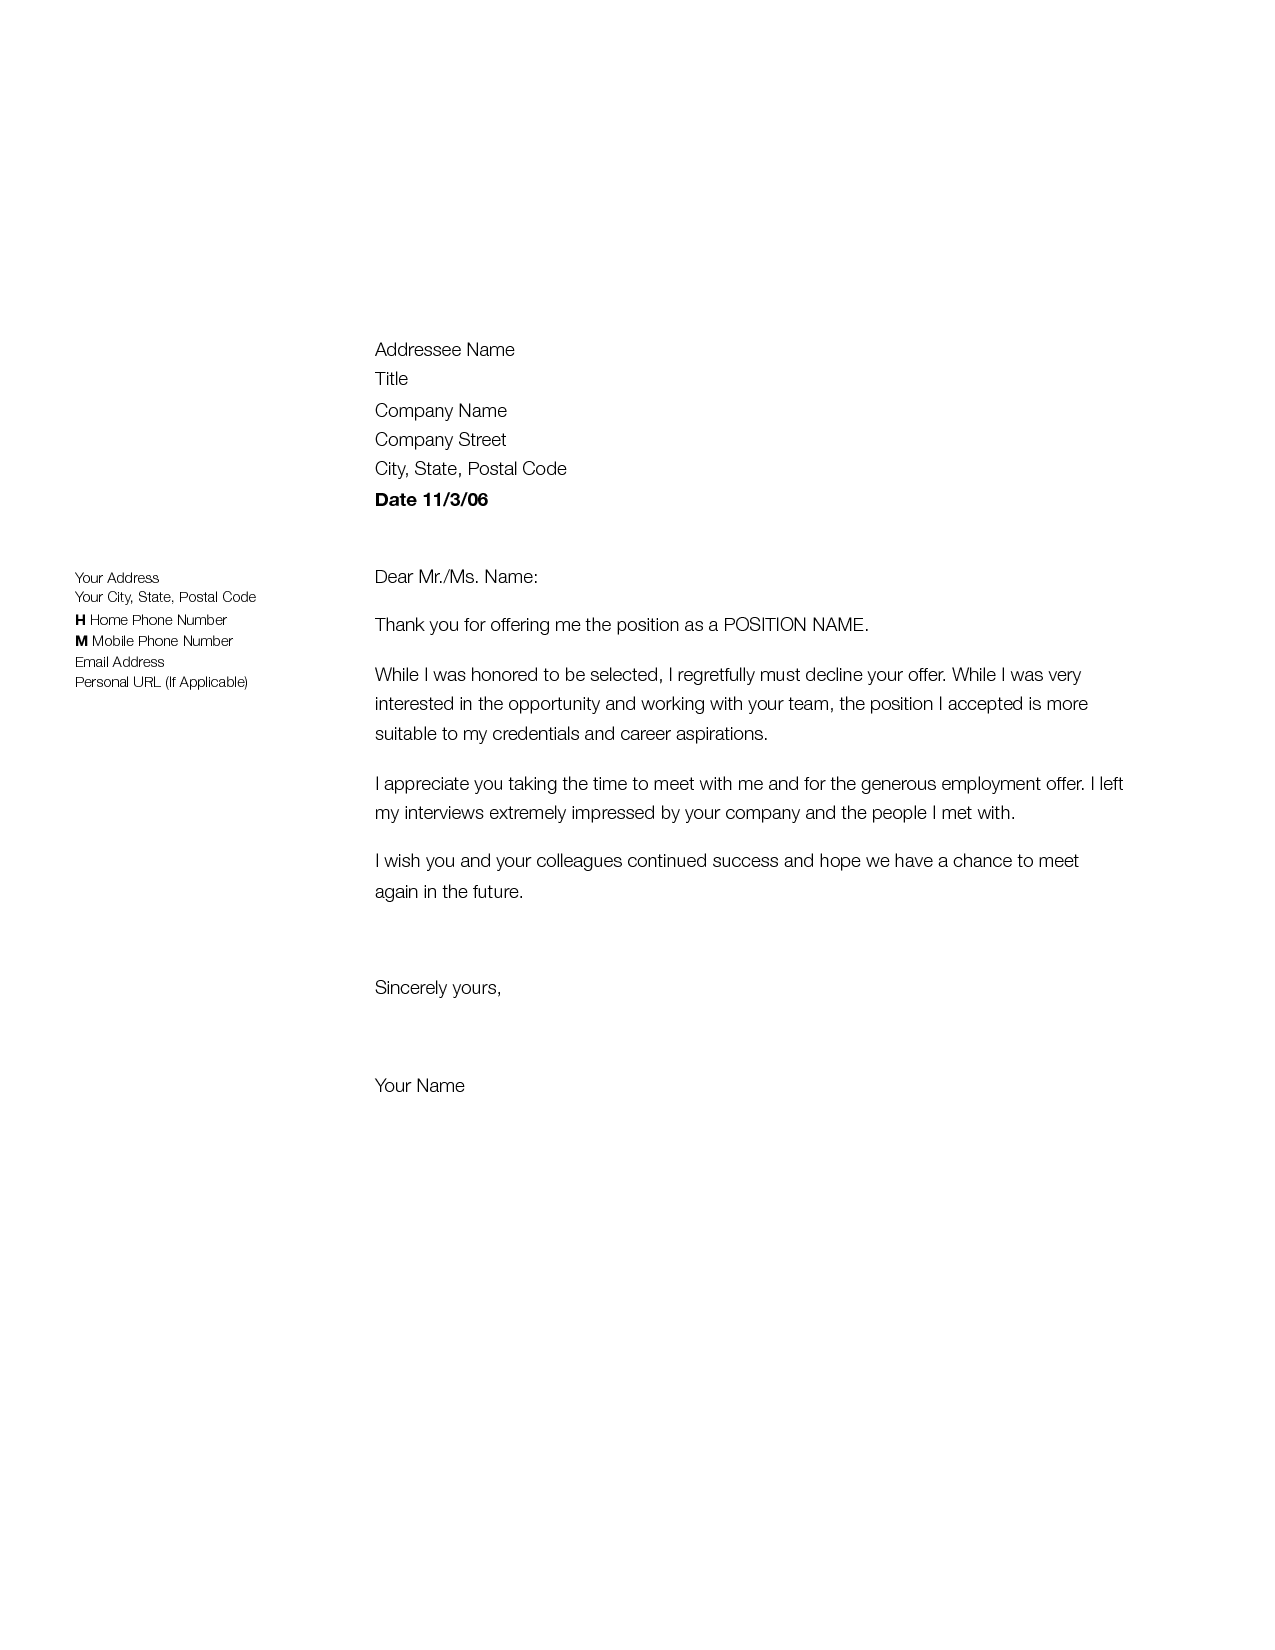 Job decline letter sample employment rejection letter to let an job decline letter sample employment rejection letter to let an employer know that you are spiritdancerdesigns Gallery